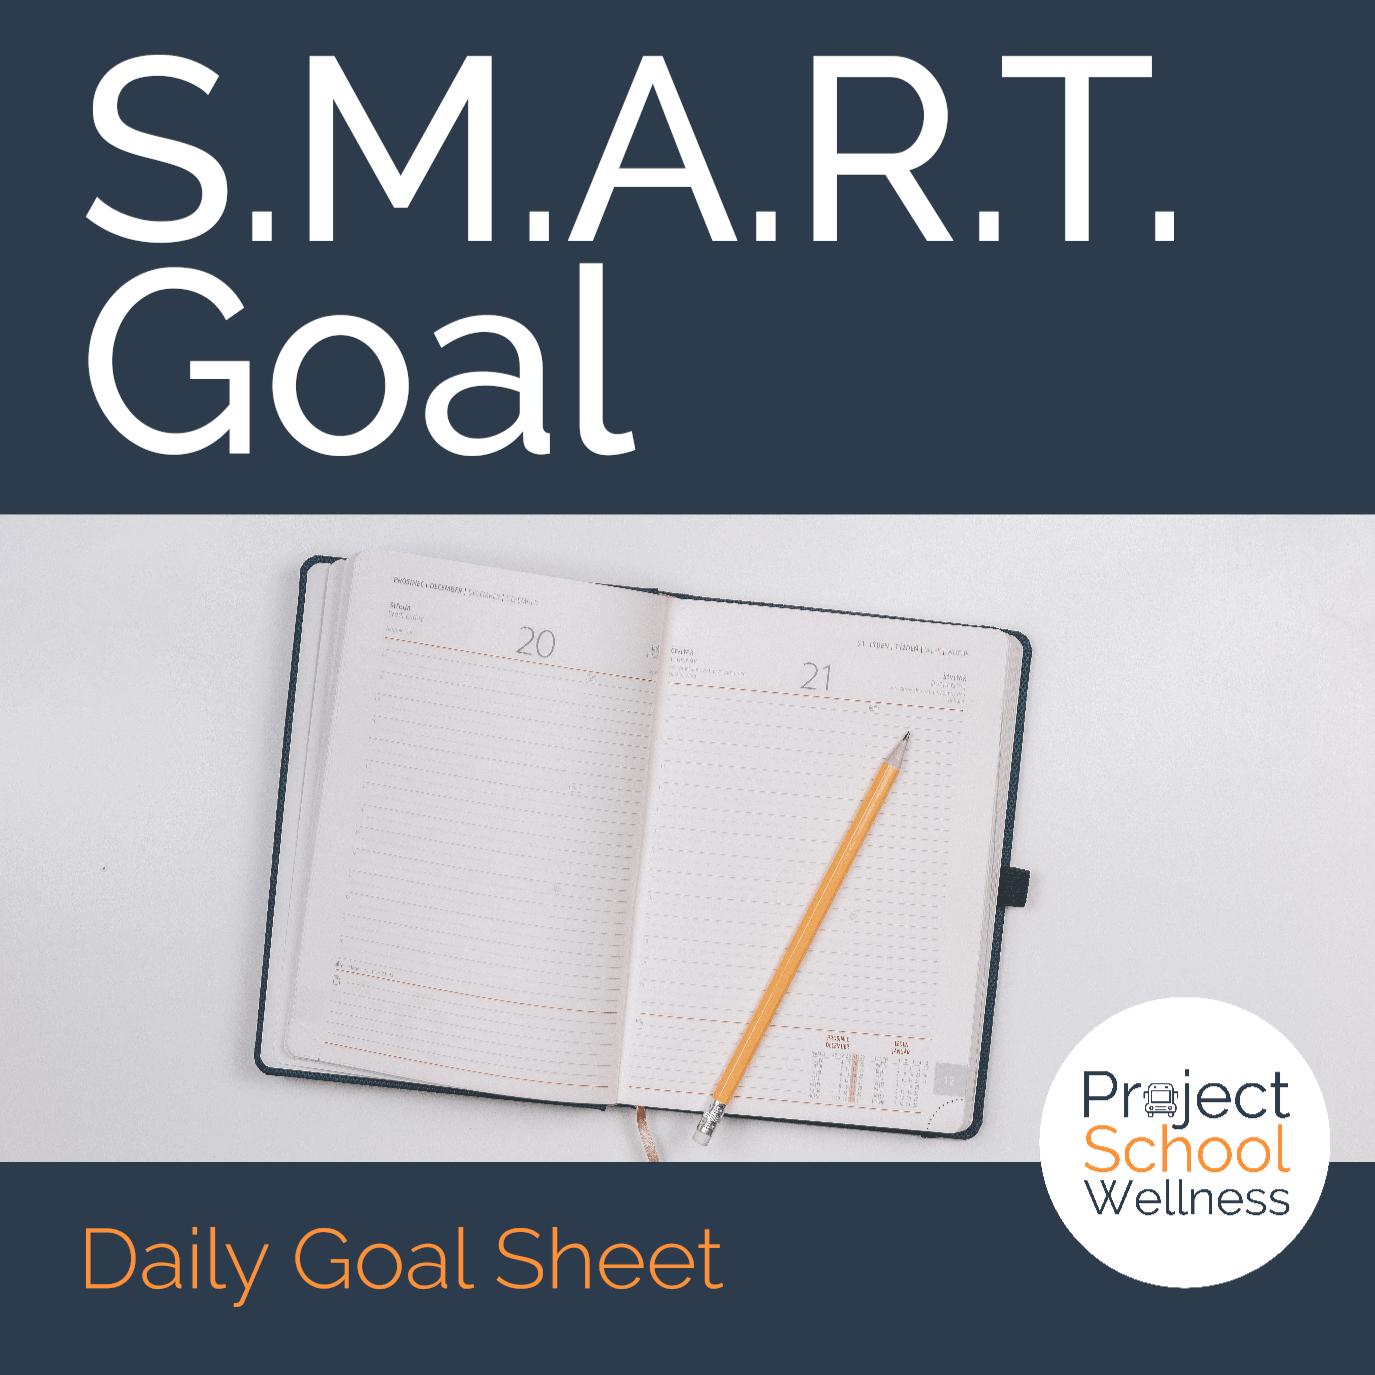 PSW Store - Daily Goal Sheet